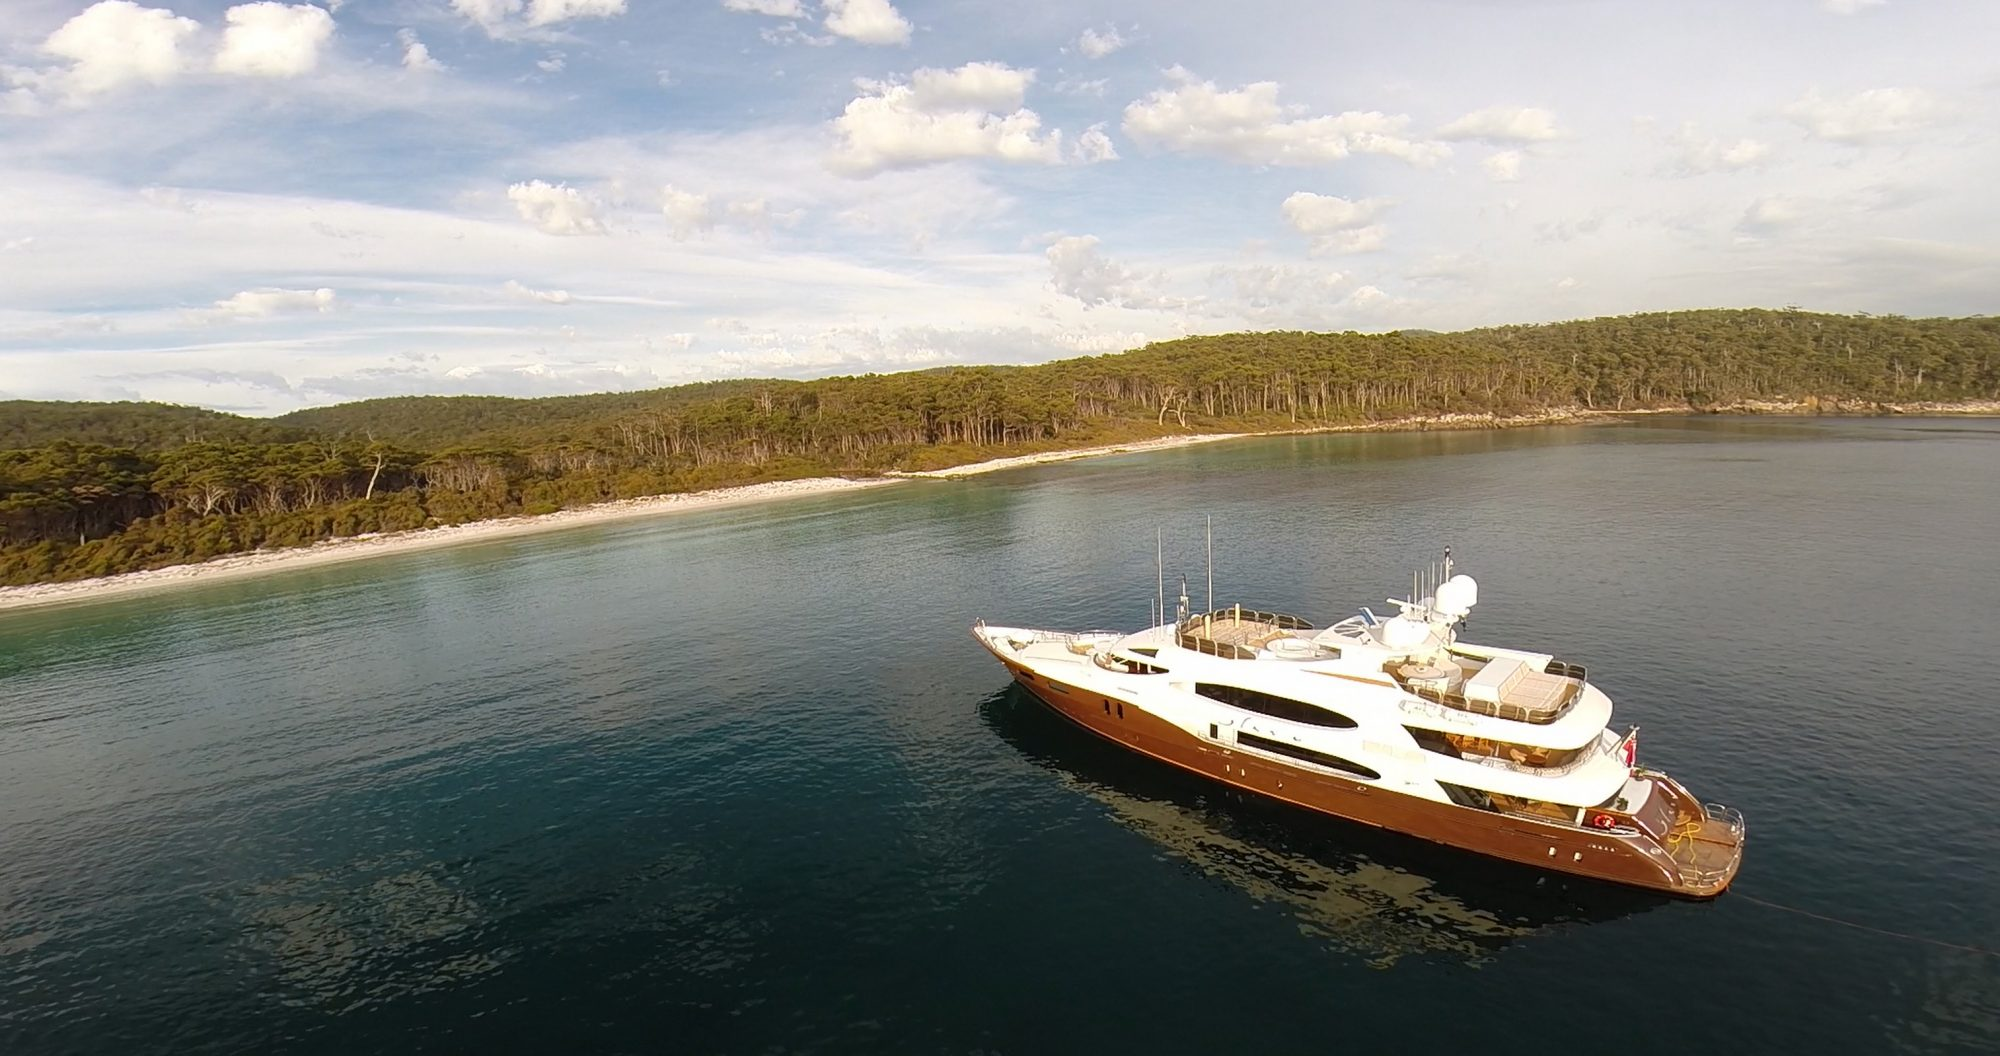 Fortescue Bay_16.02.10_007a